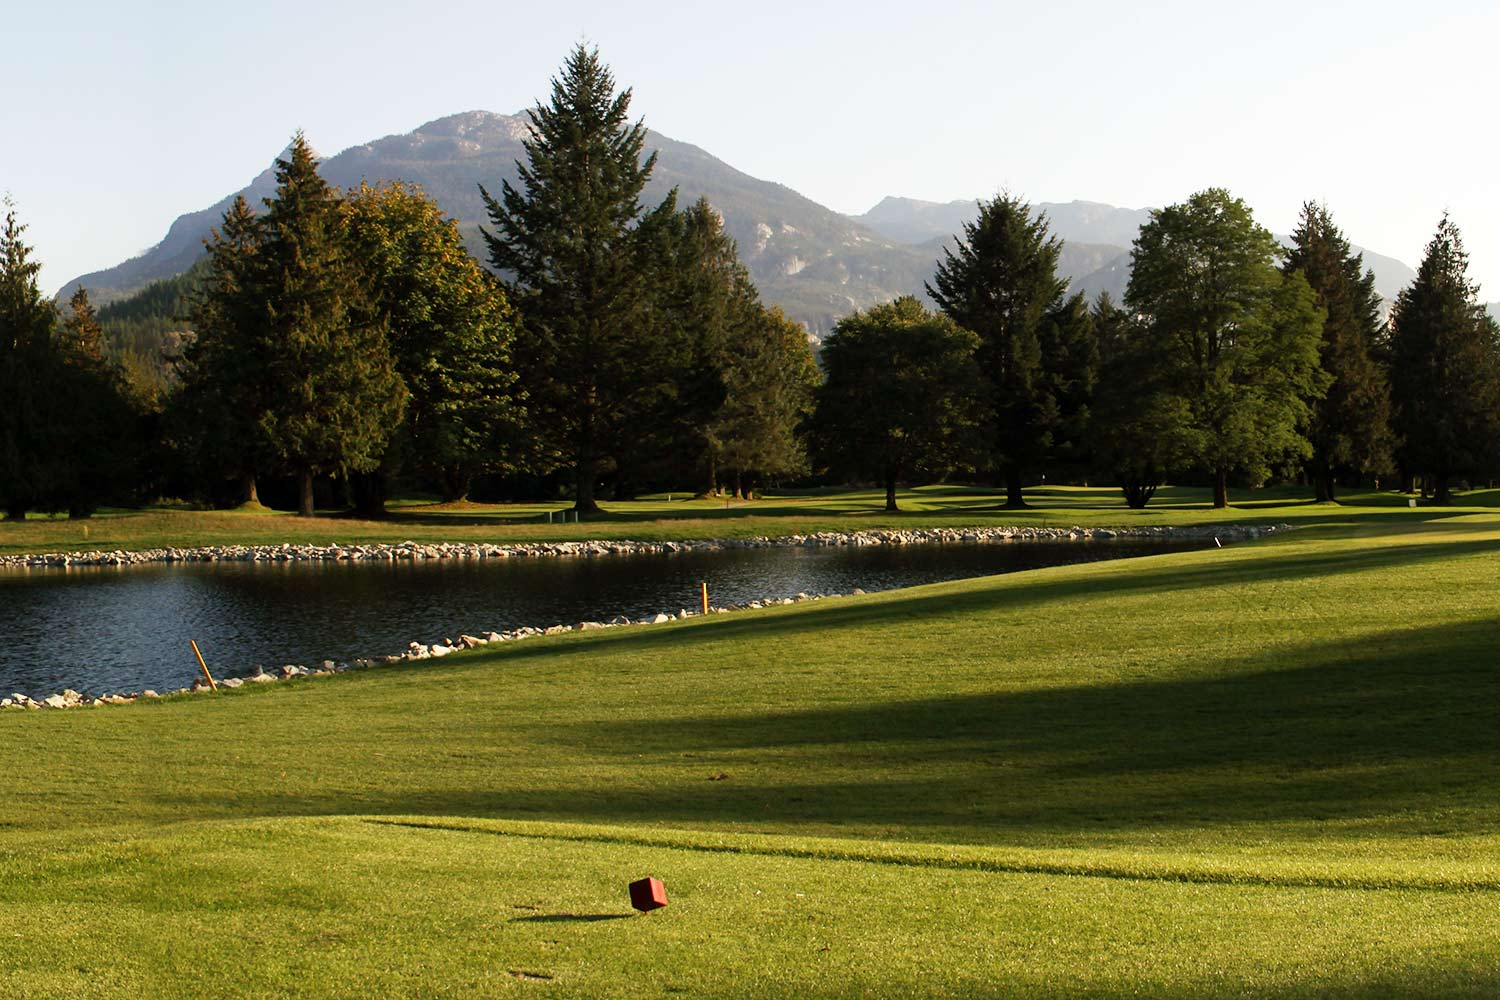 Squamish-Valley-Golf-Course-1500x1000.jpg